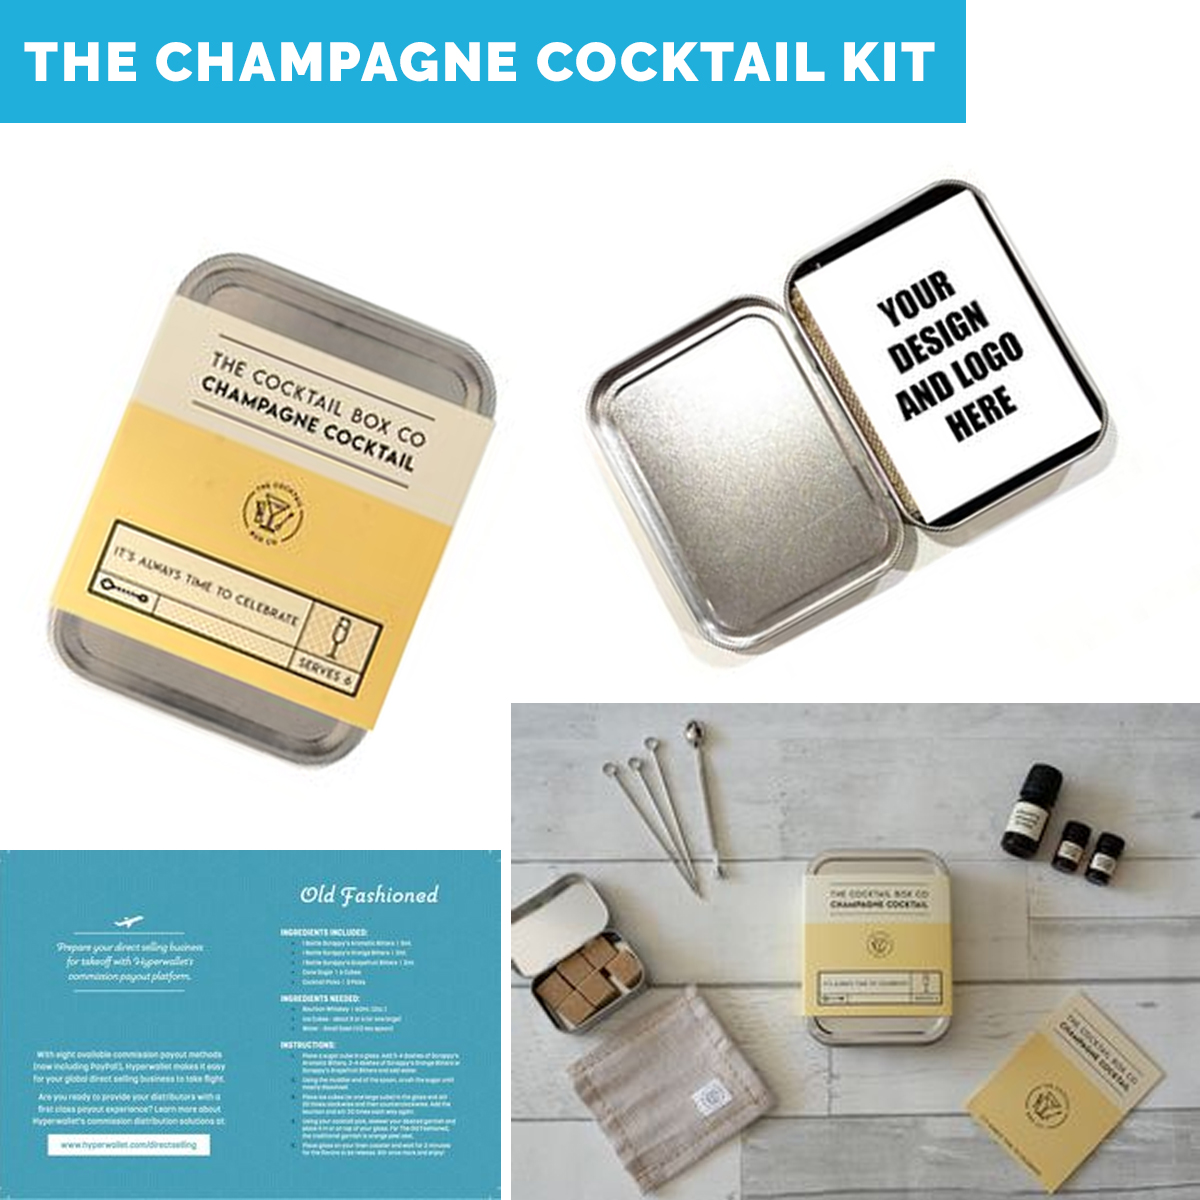 Work From Home Kits- happy hour kits